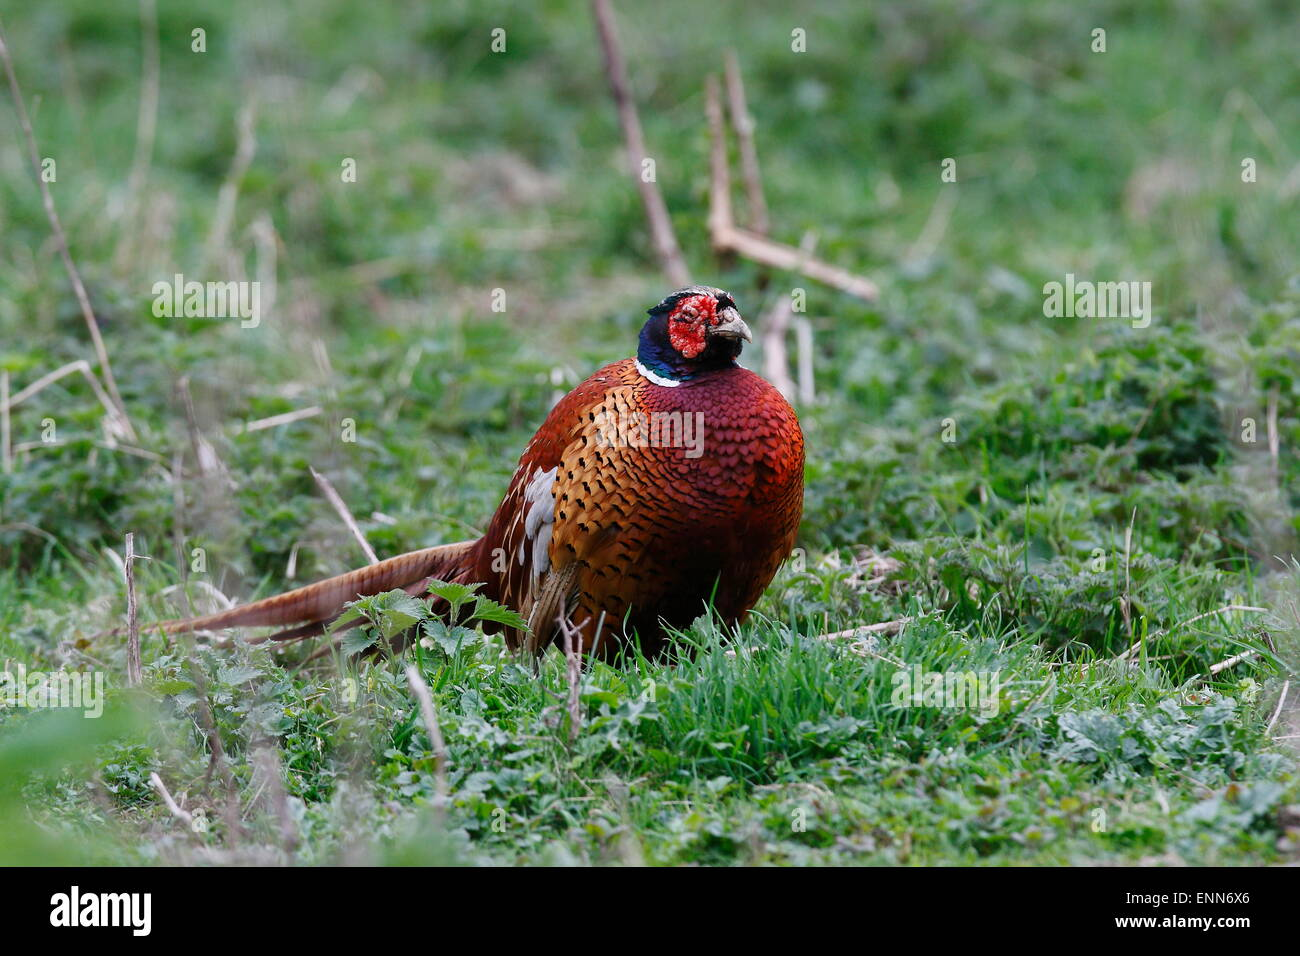 Male Pheasant with facial disfigurement - Stock Image